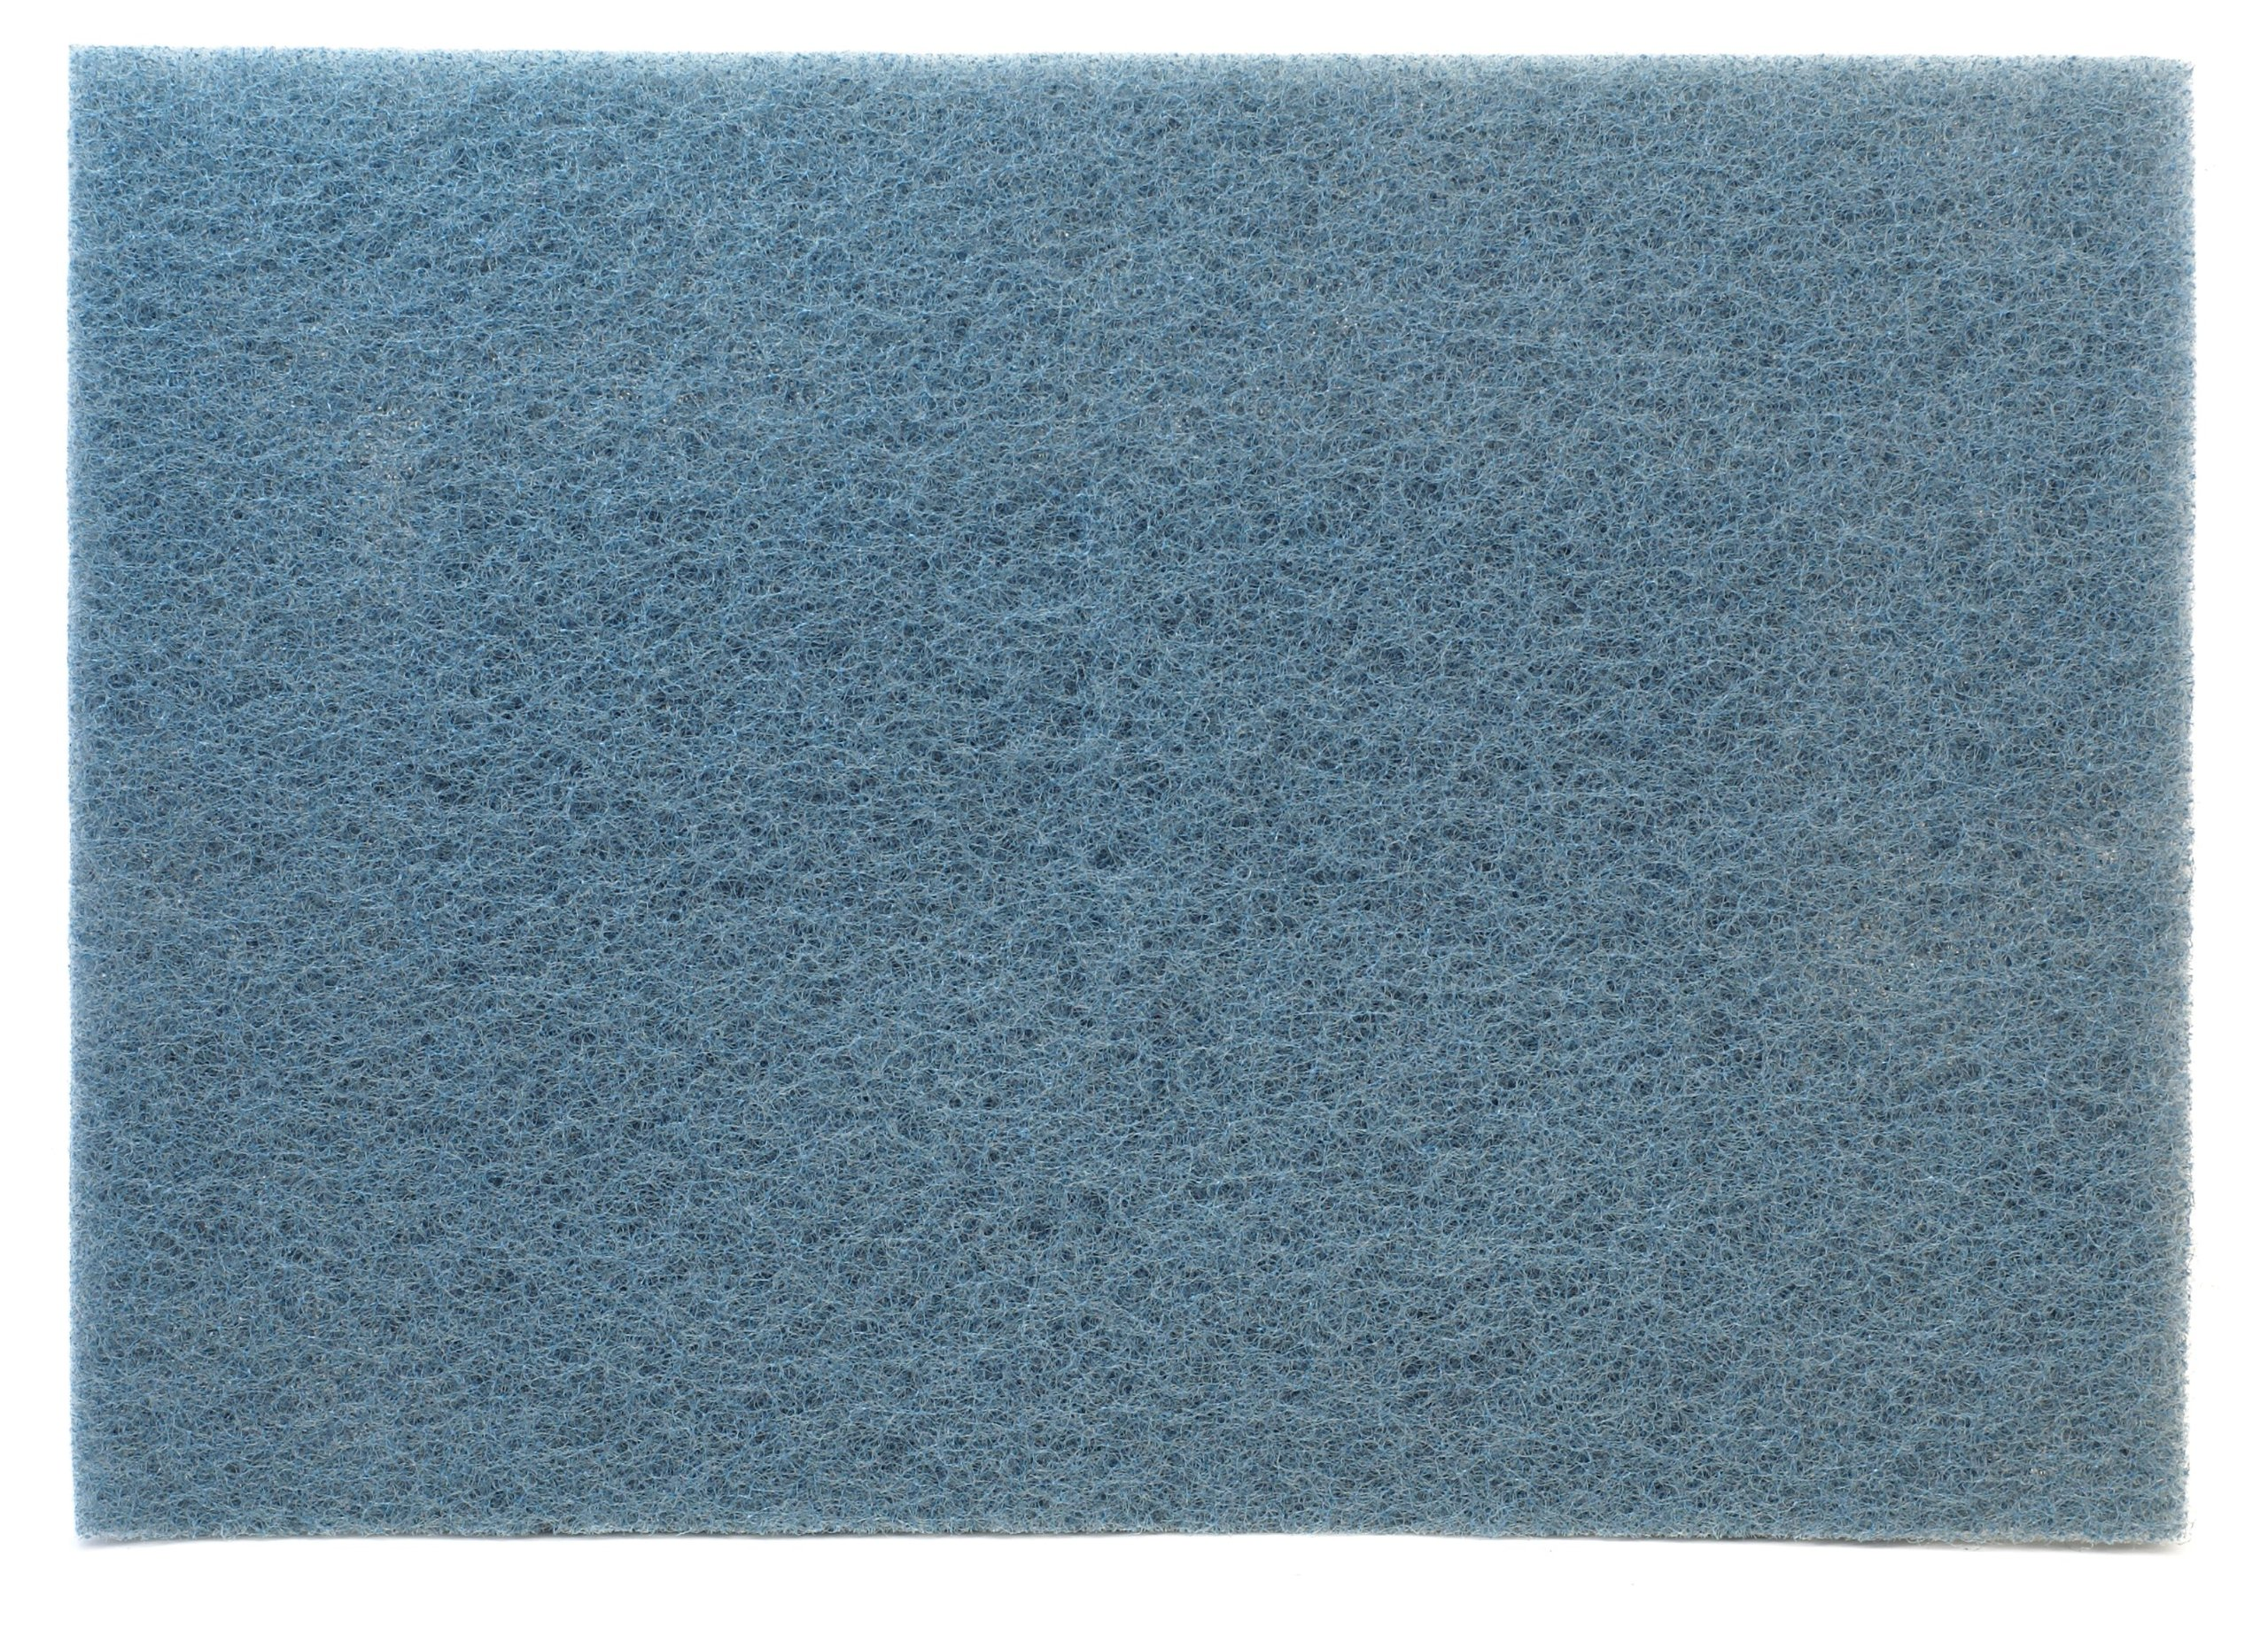 3M Blue Cleaner Pad 5300, 20'' x 14'' (Case of 10)